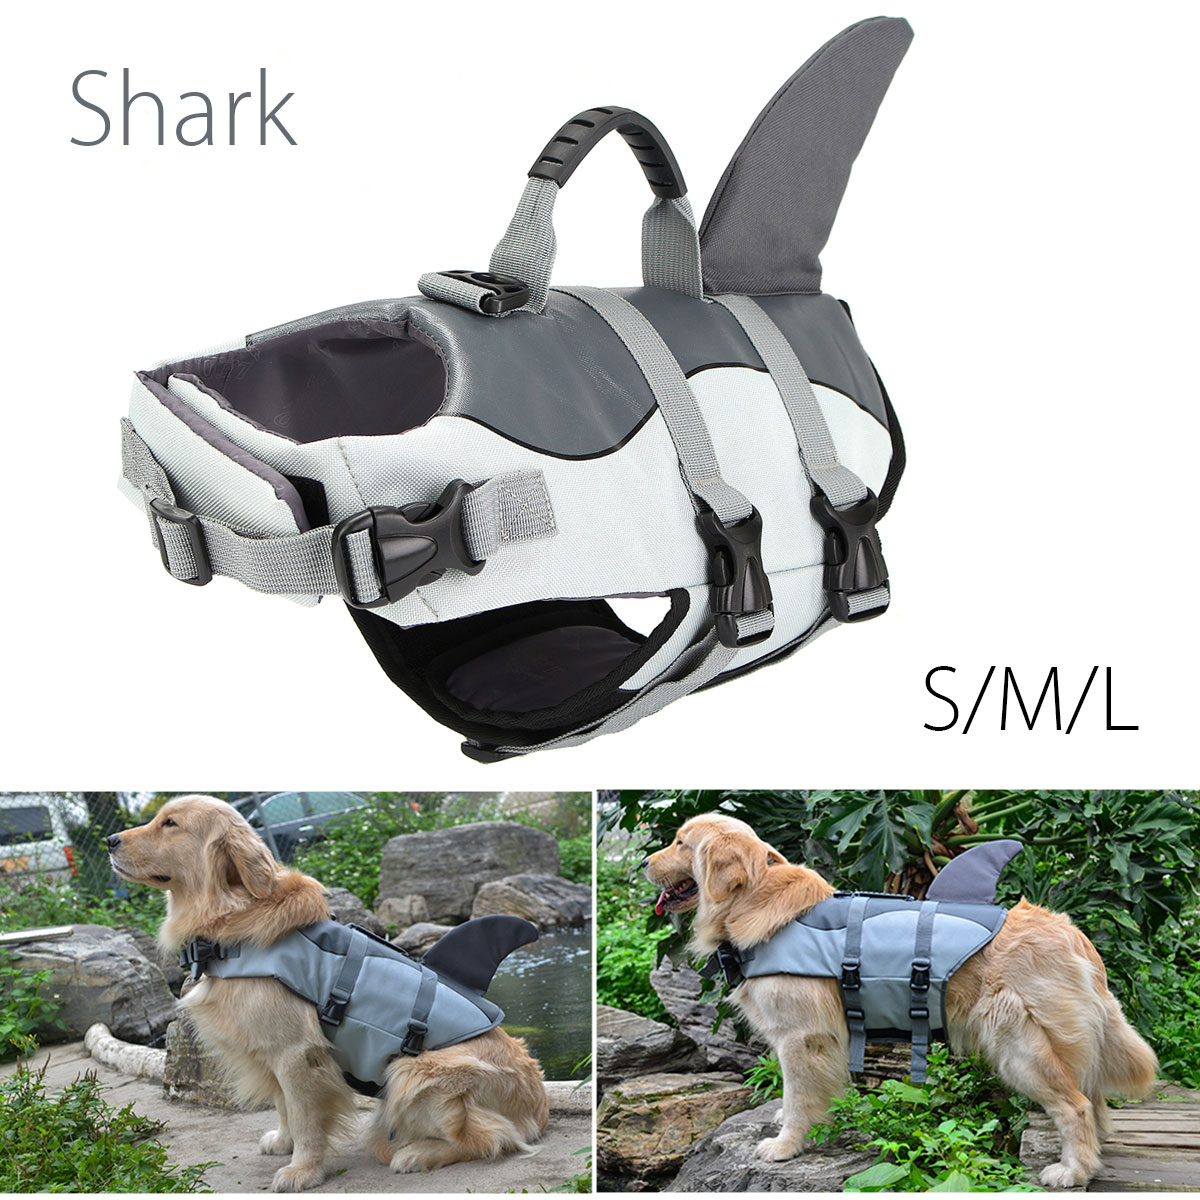 NEW Float Dog Life Jacket Shark Pet Swimming Life Jacket Vest Swimwear Safety Clothes For Small Large Dogs Swimwear S M L